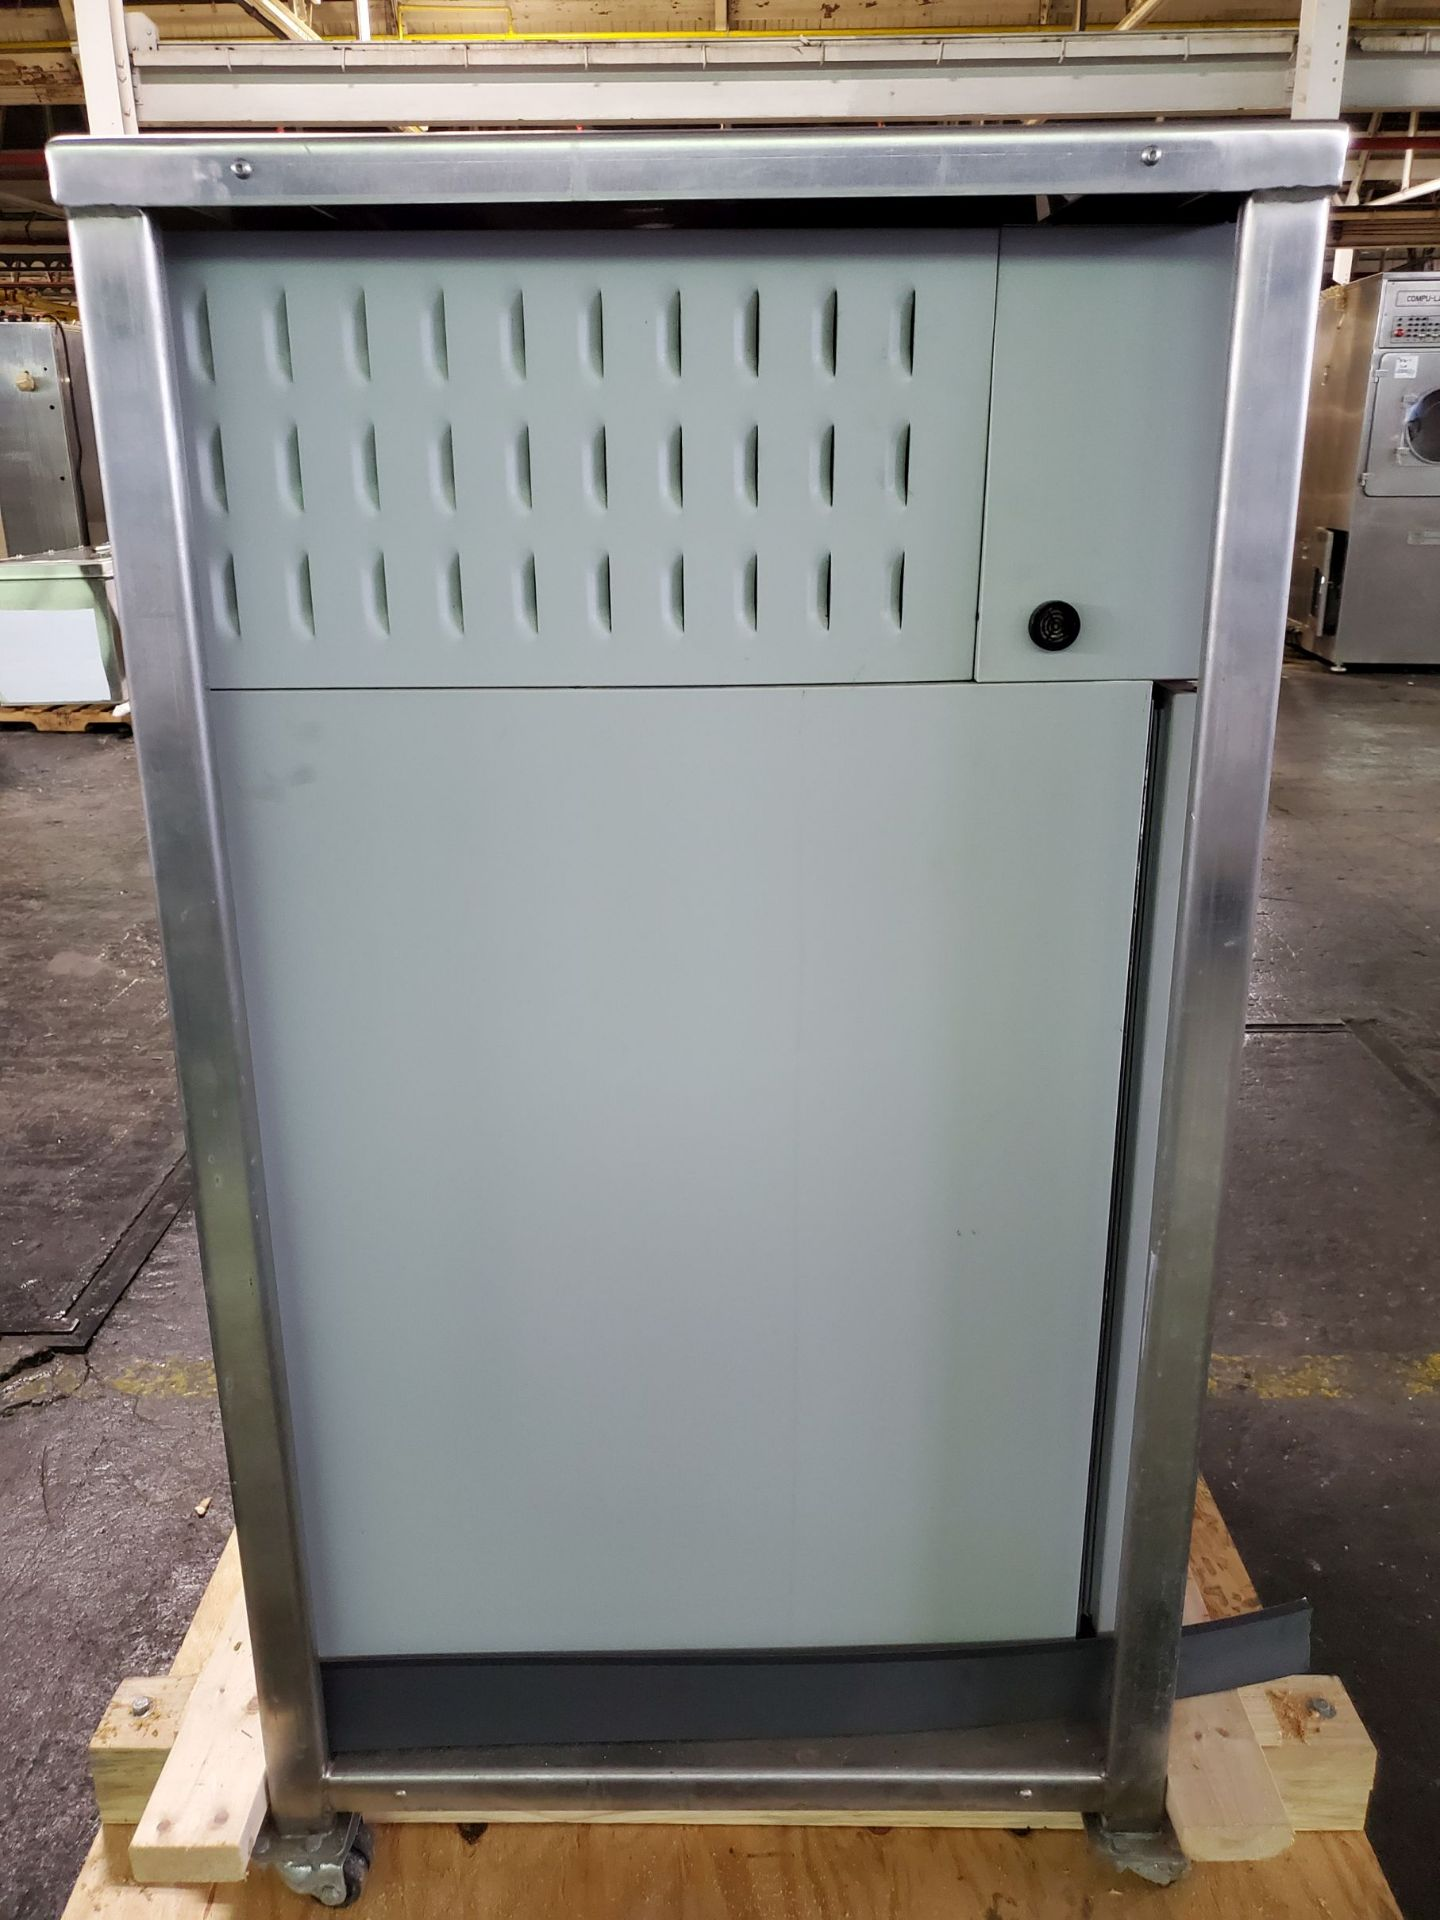 Environmental Specialties Stability Chamber, model ES2000 CDM/BT, 0-70 C and 10-96% humidty range, - Image 5 of 9